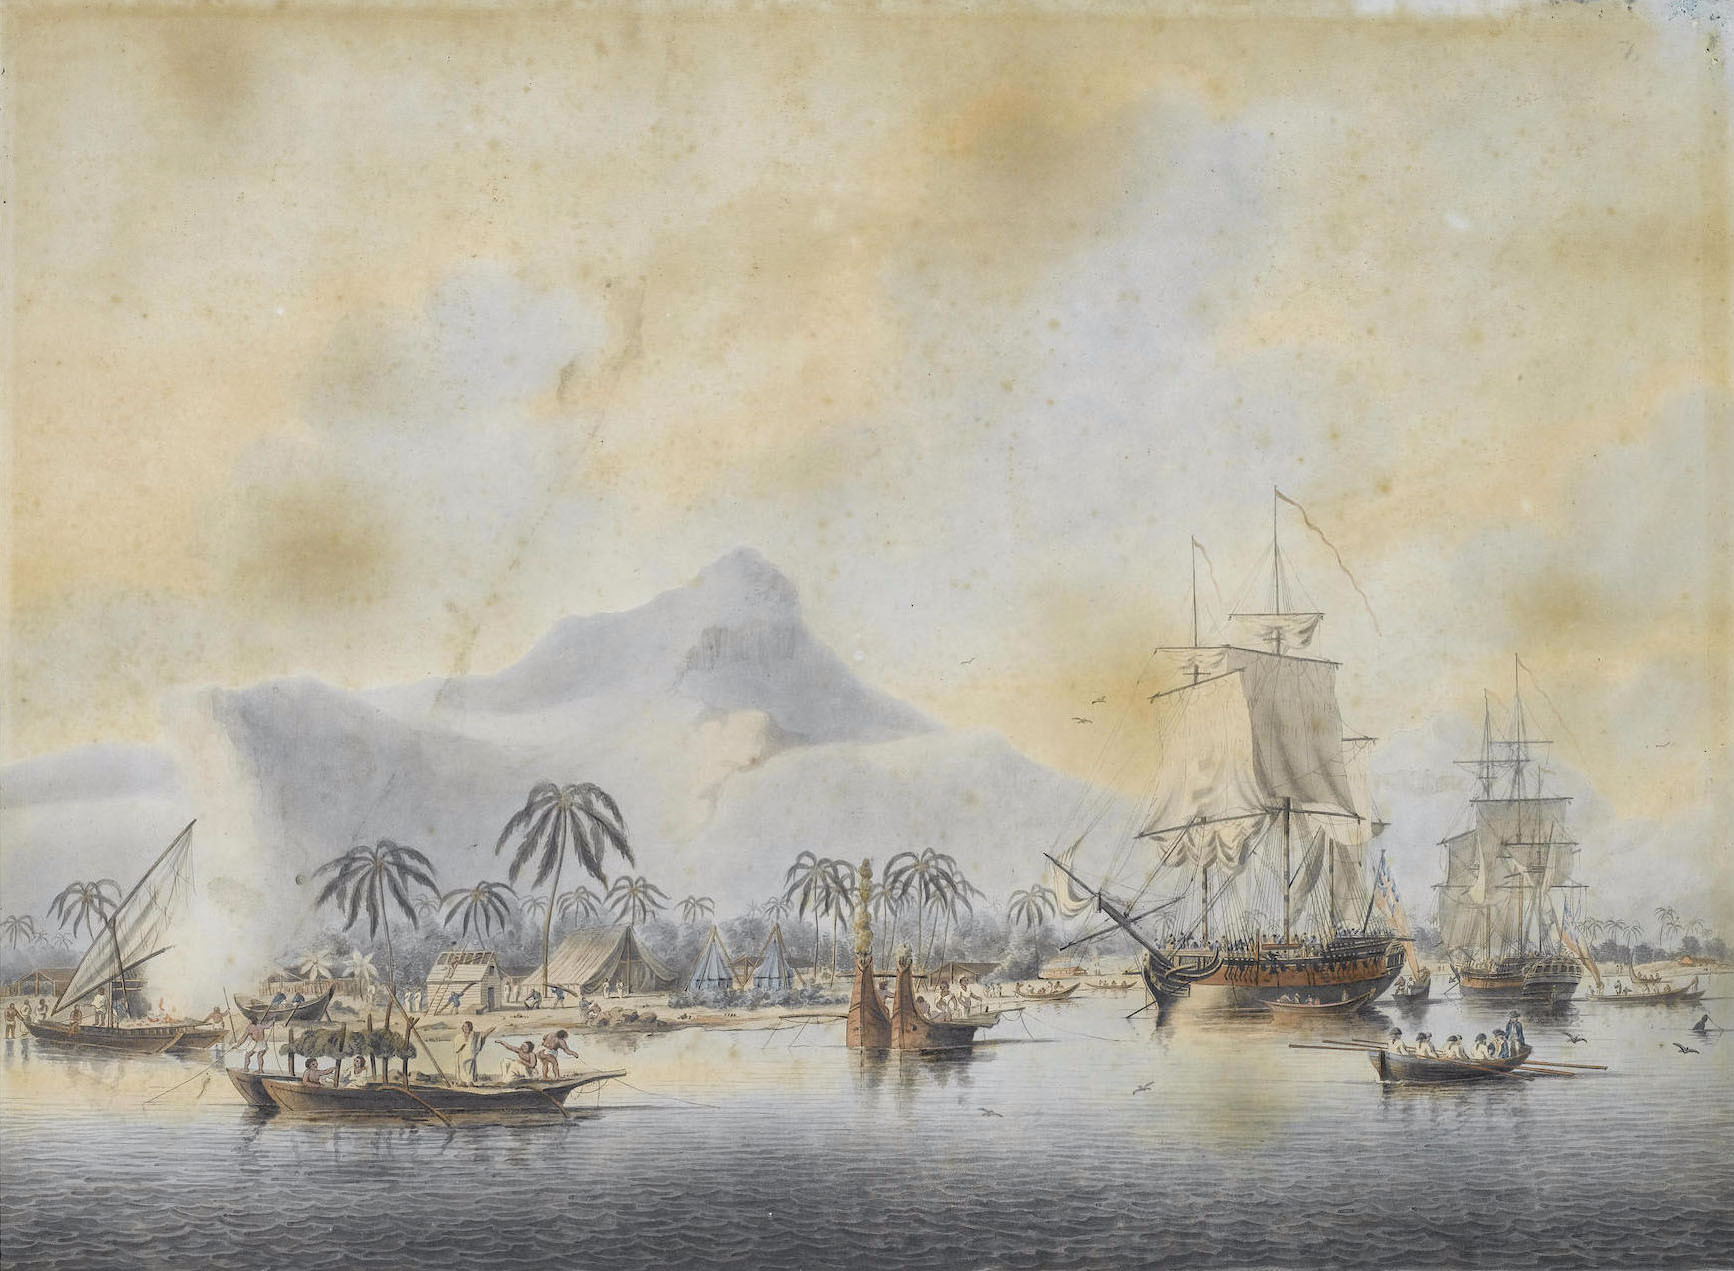 Views of the south seas par John Cleveley the Younger (1787-1788)